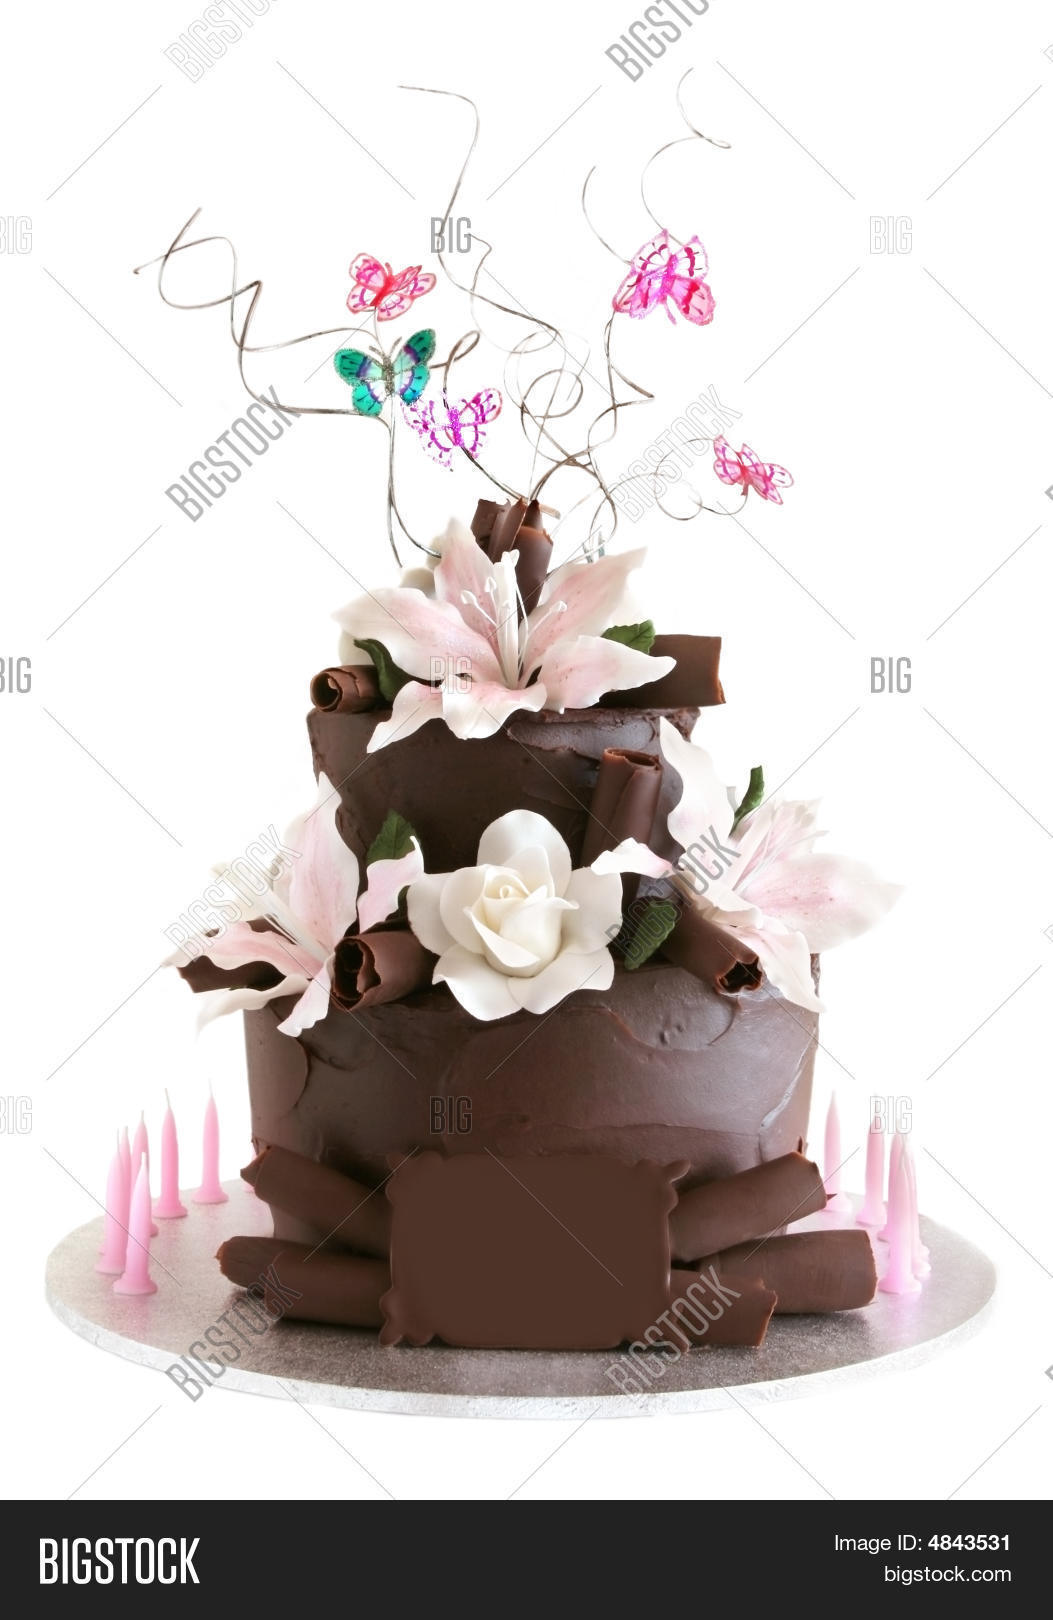 A Two Tiered Chocolate Cake With Flowers Butterflies And Candles Blank Plaque For Your Own Message